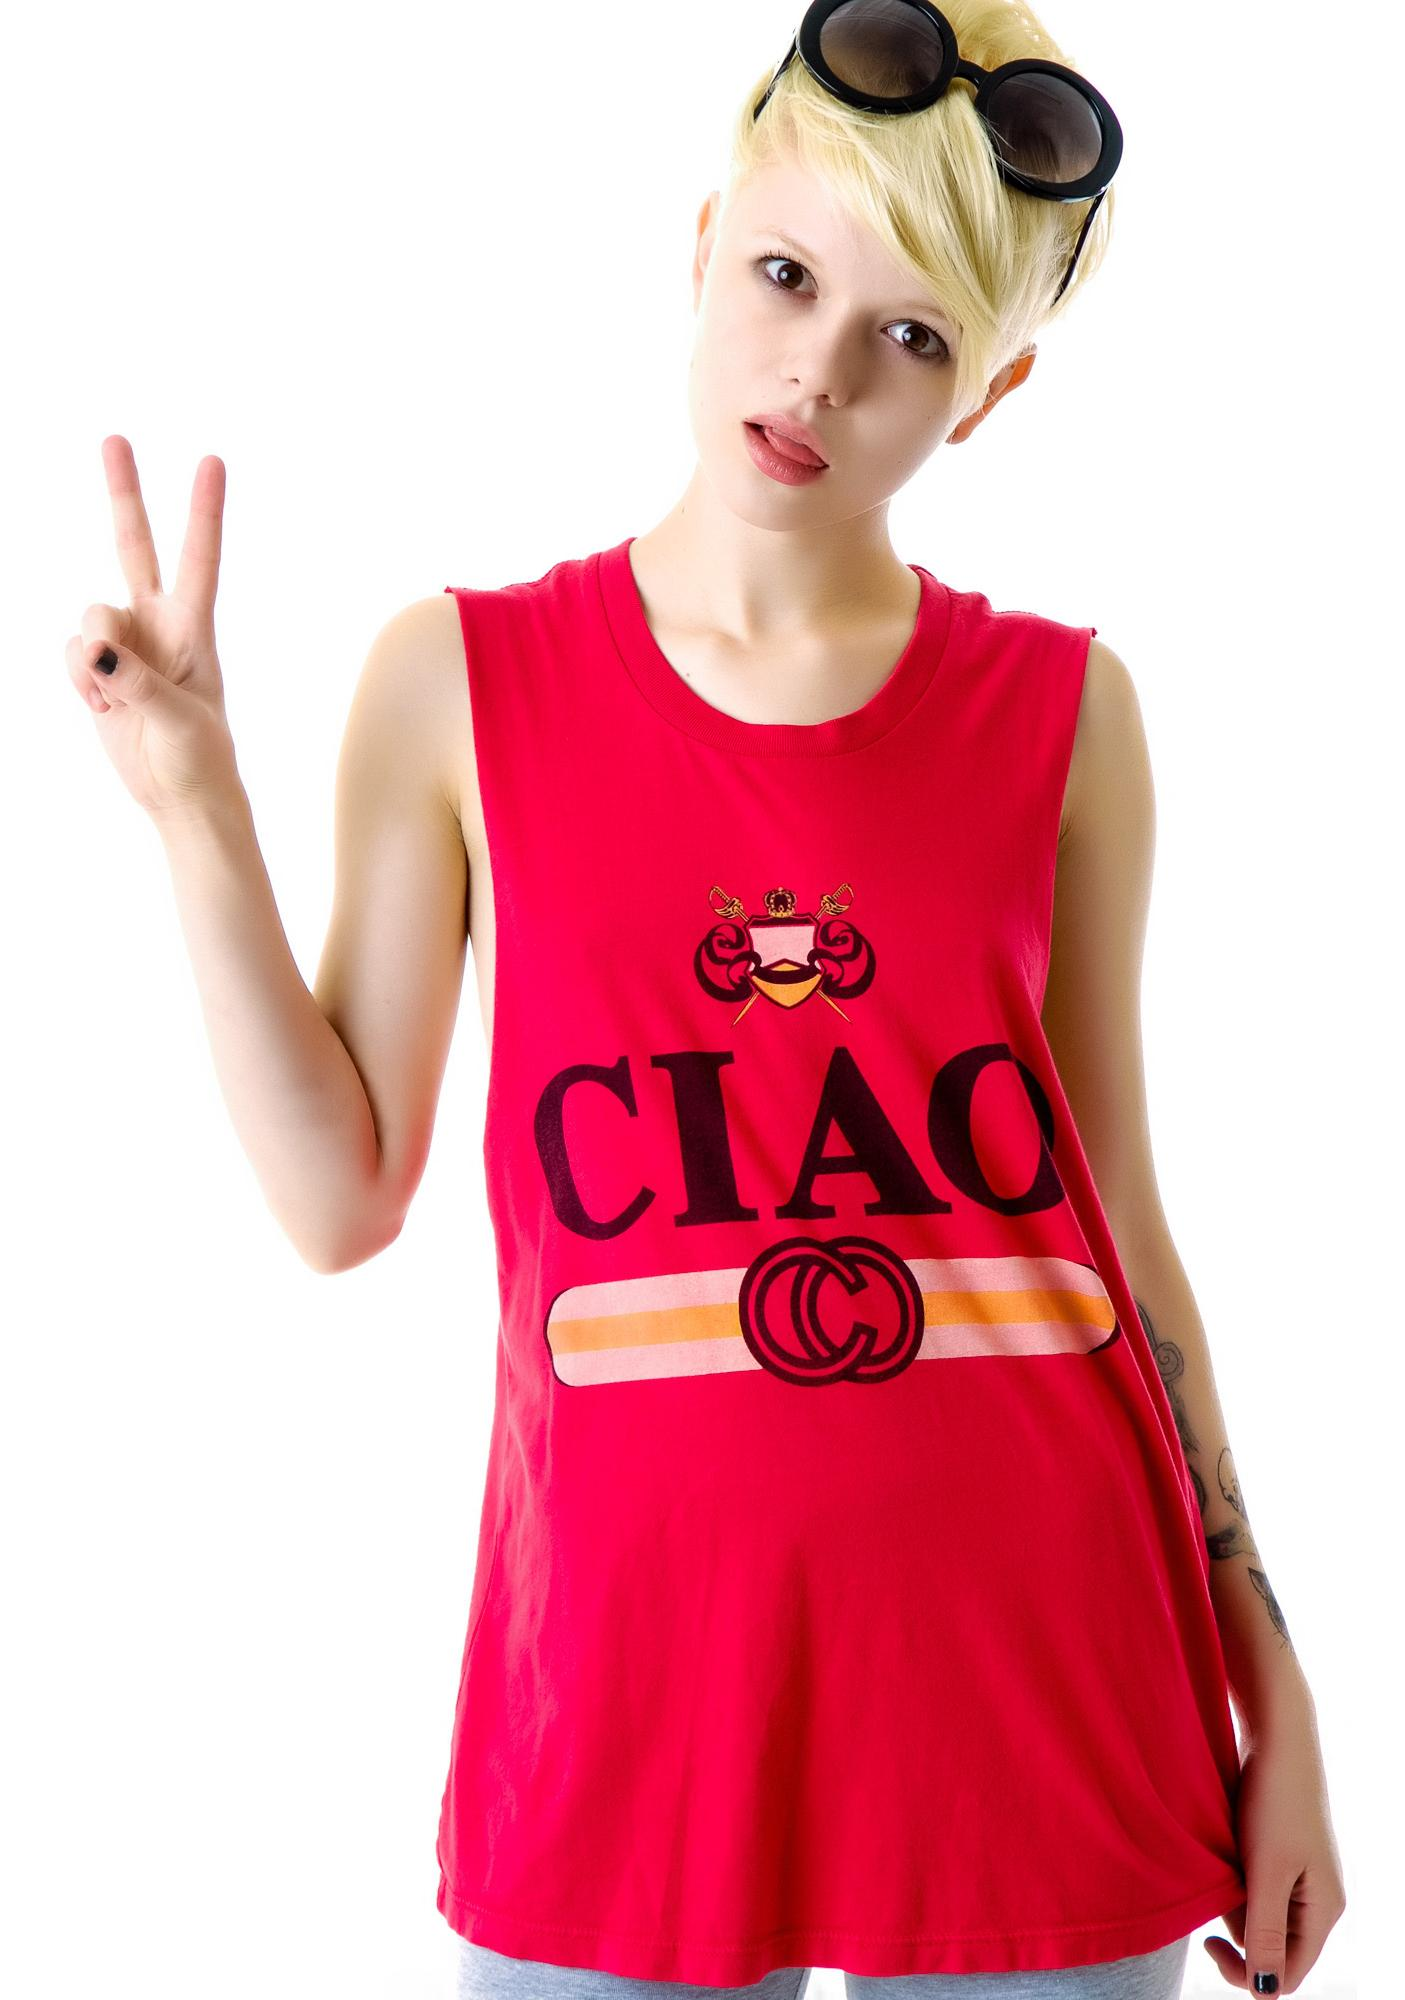 Rebel Yell Ciao Cut-Off Tank